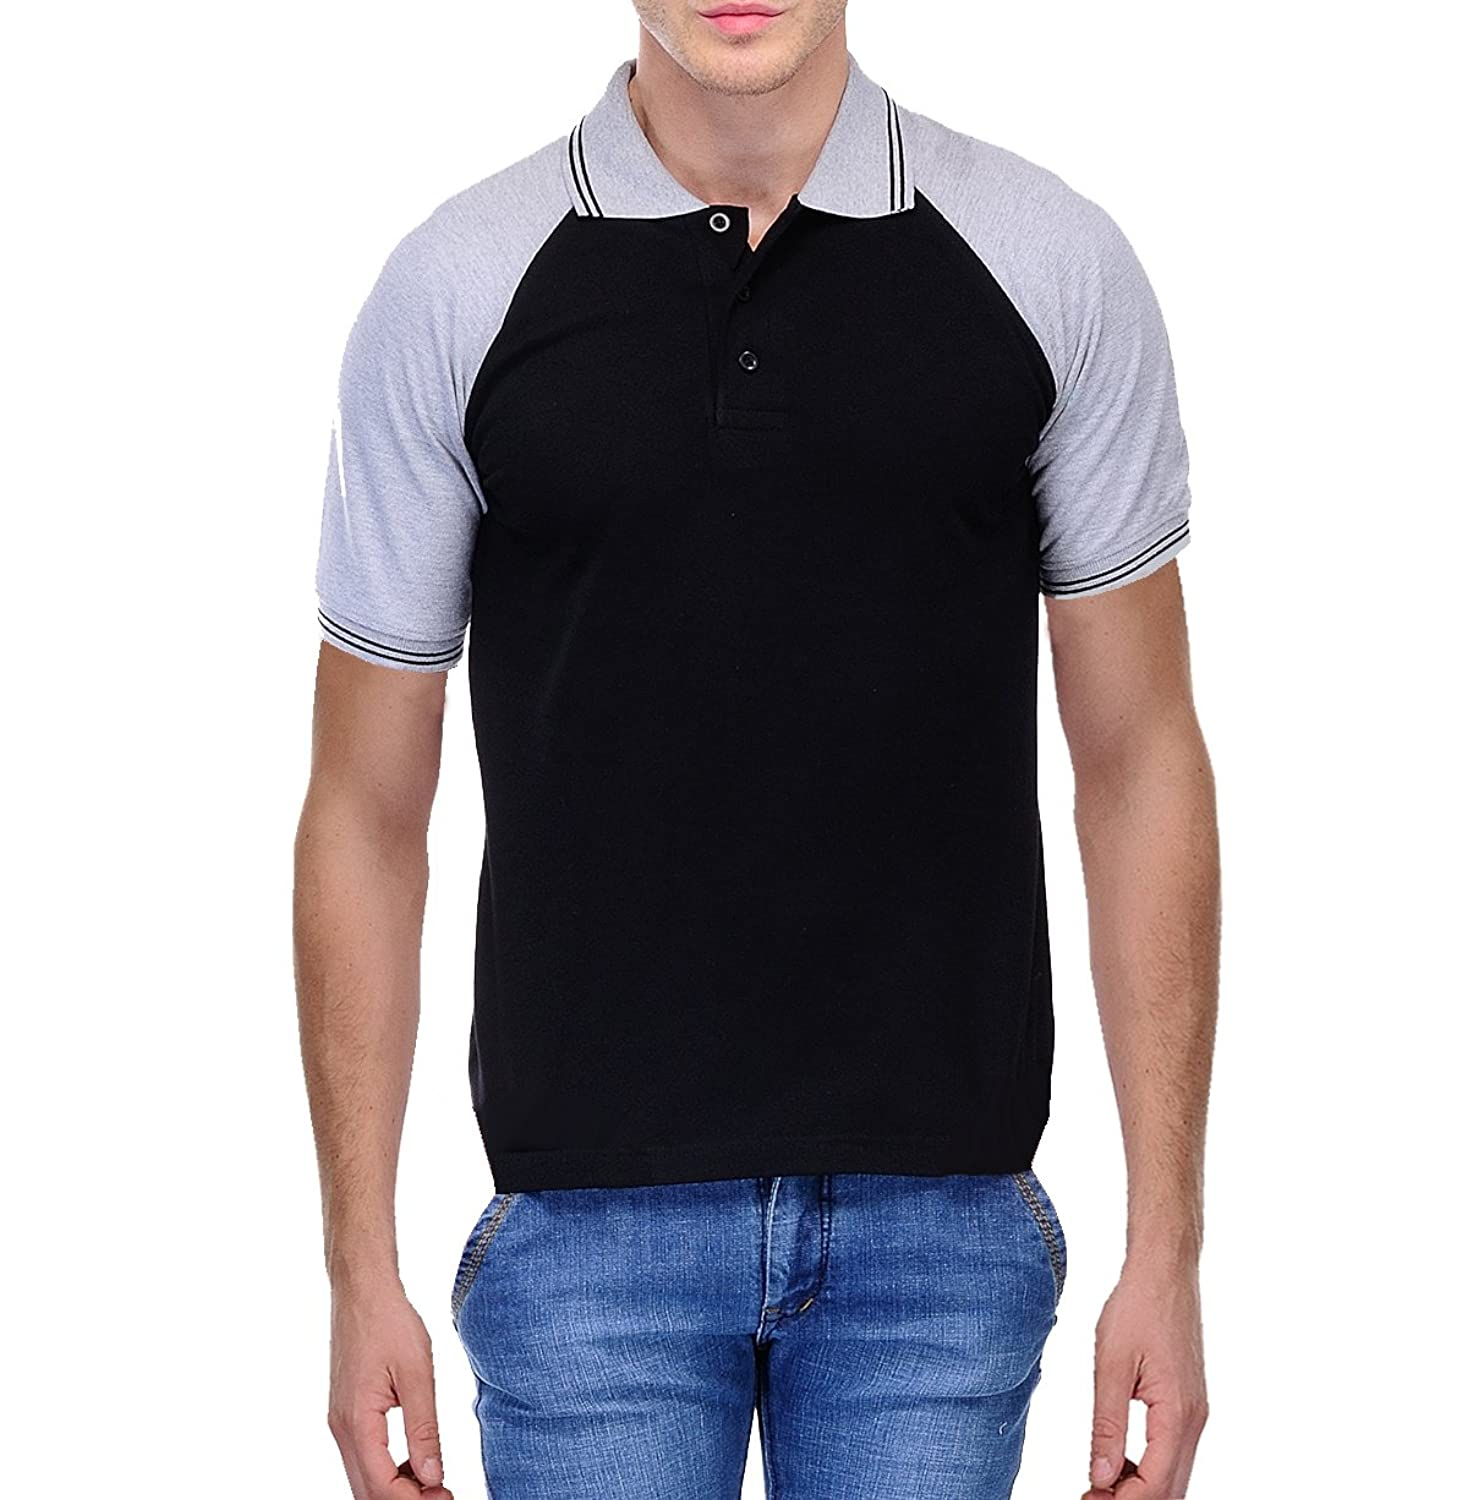 Black t shirt man - Scott Men S Premium Cotton Polo T Shirt Black Amazon In Clothing Accessories